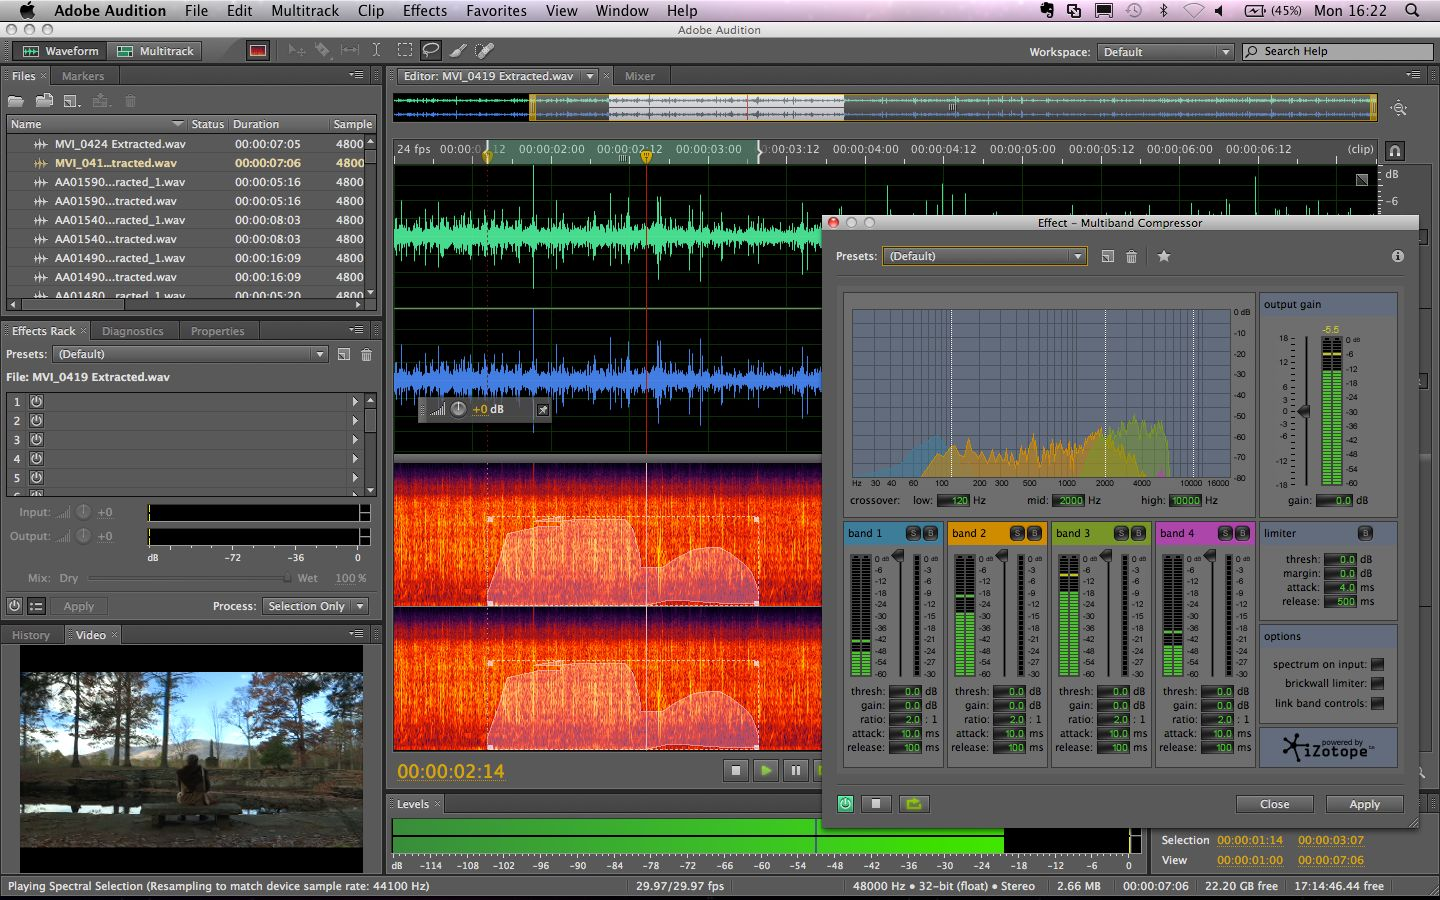 Adobe audition 3 v3.0.1 build 8347 final release